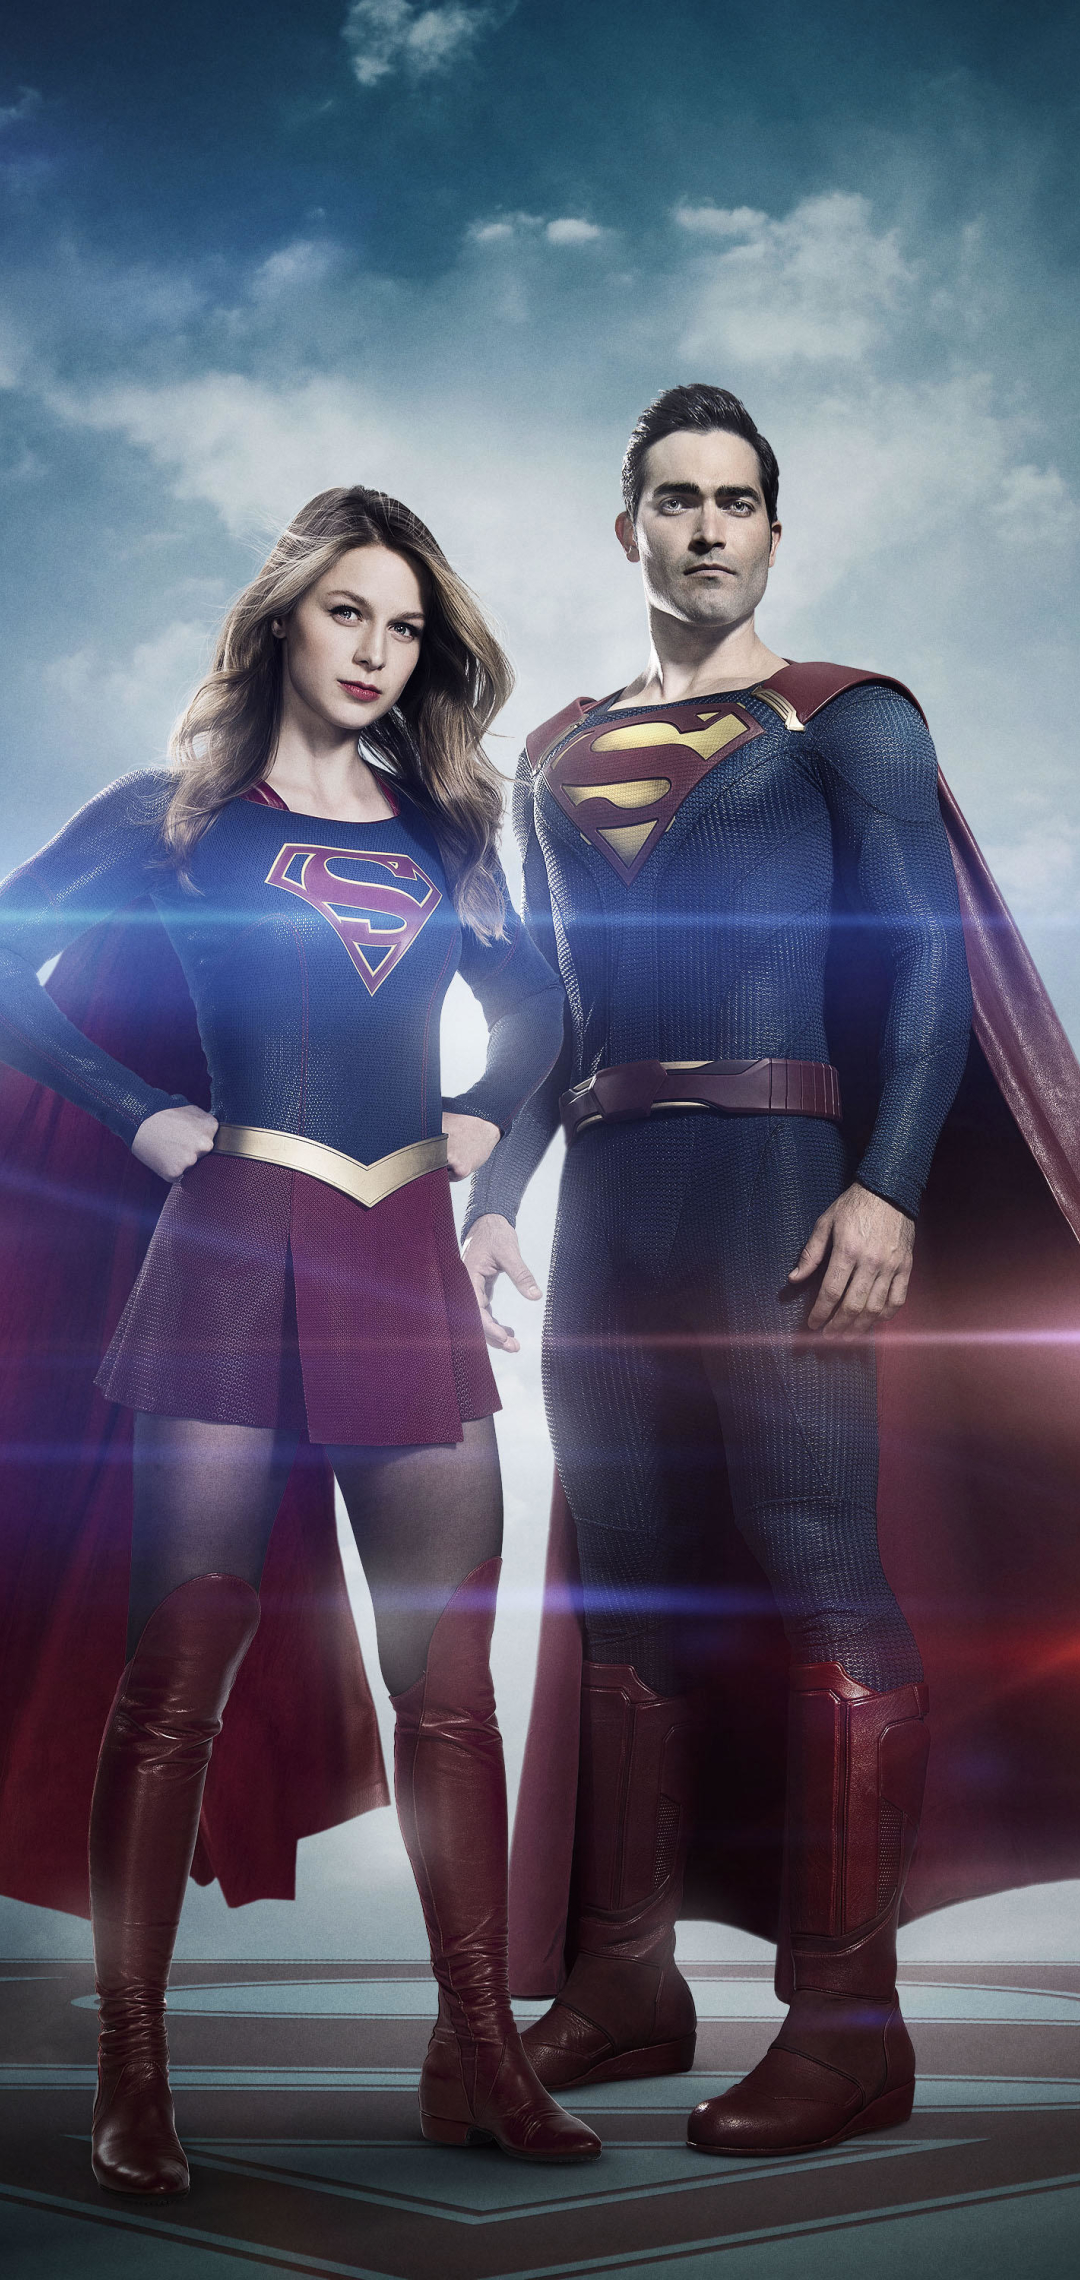 Supergirl and Superman Arrowverse Wallpaper in 1080x2280 Resolution